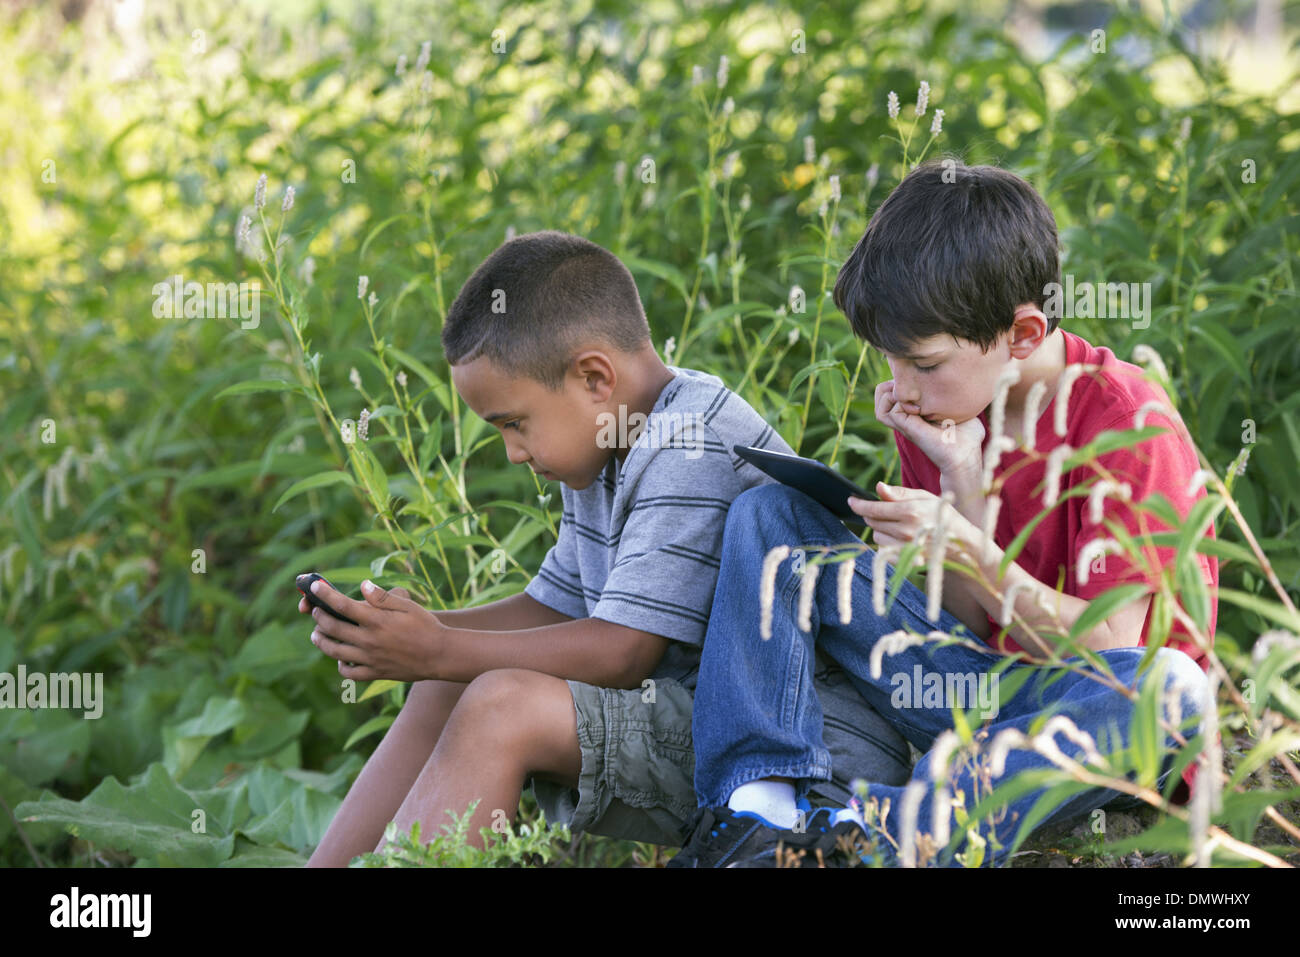 Two boys sitting in a field one on a smart phone and one using a digital tablet. - Stock Image